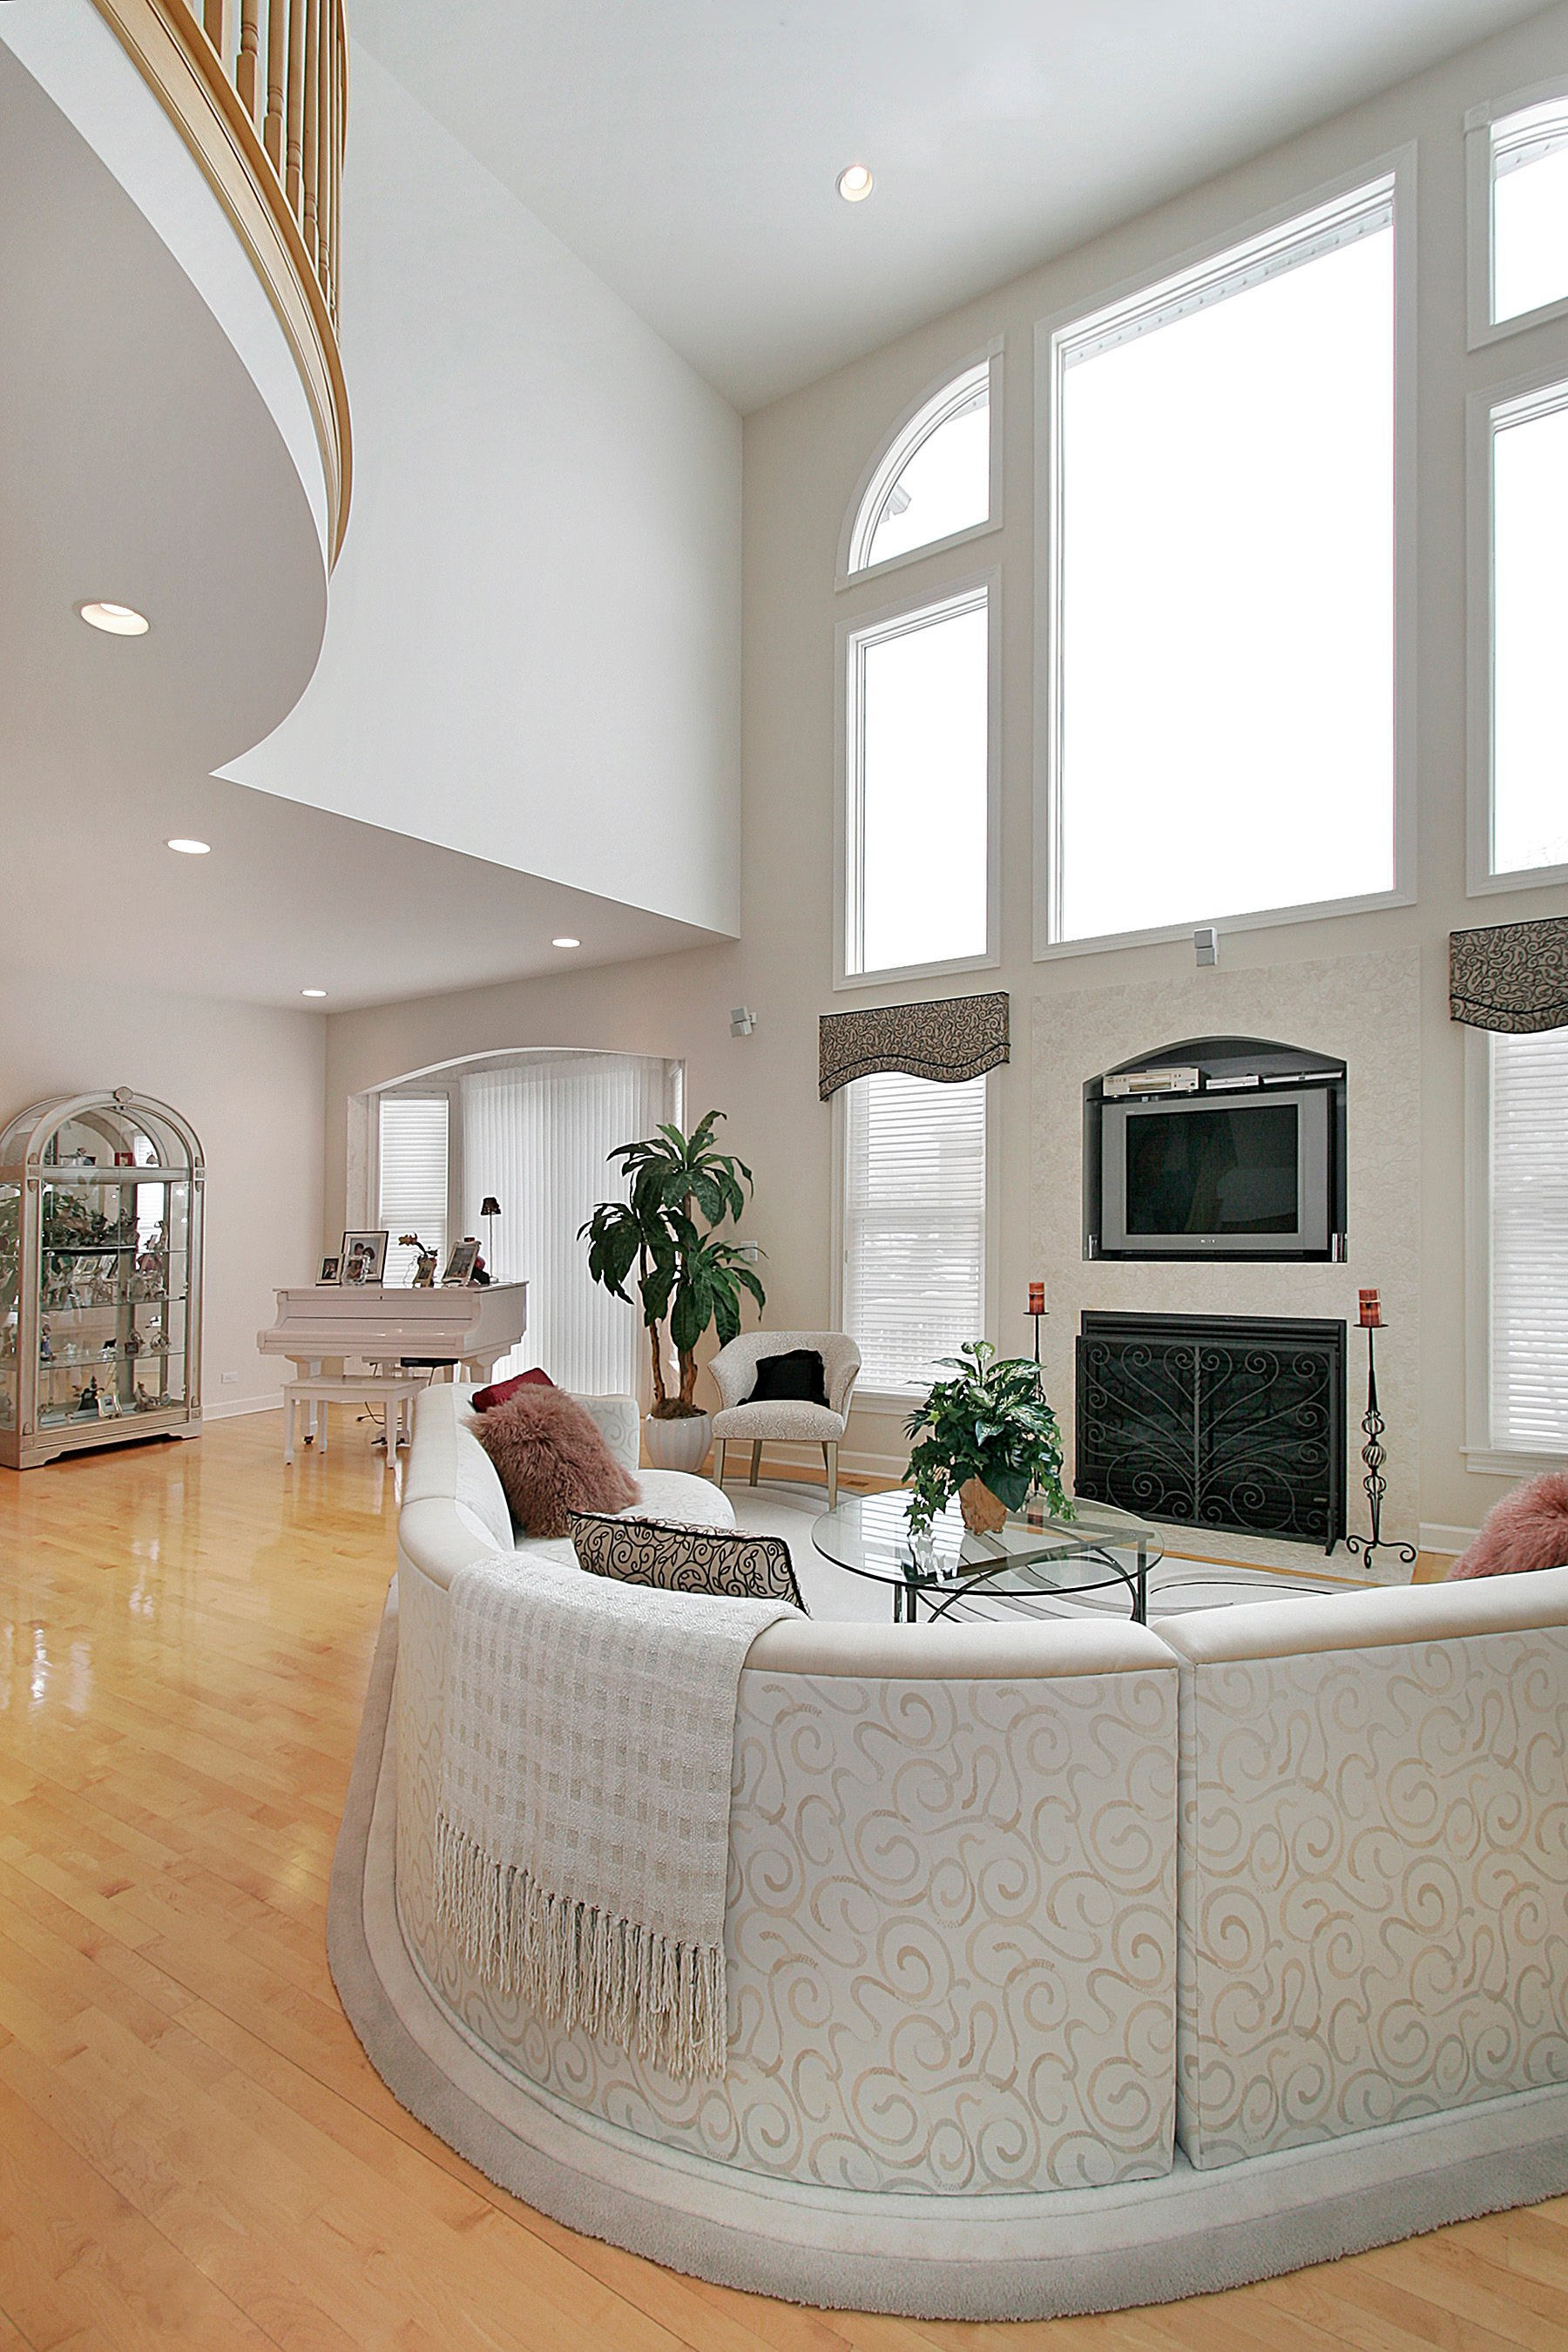 Spacious formal living space featuring an elegant custom sofa set and a fireplace under the tall shed ceiling painted in white.